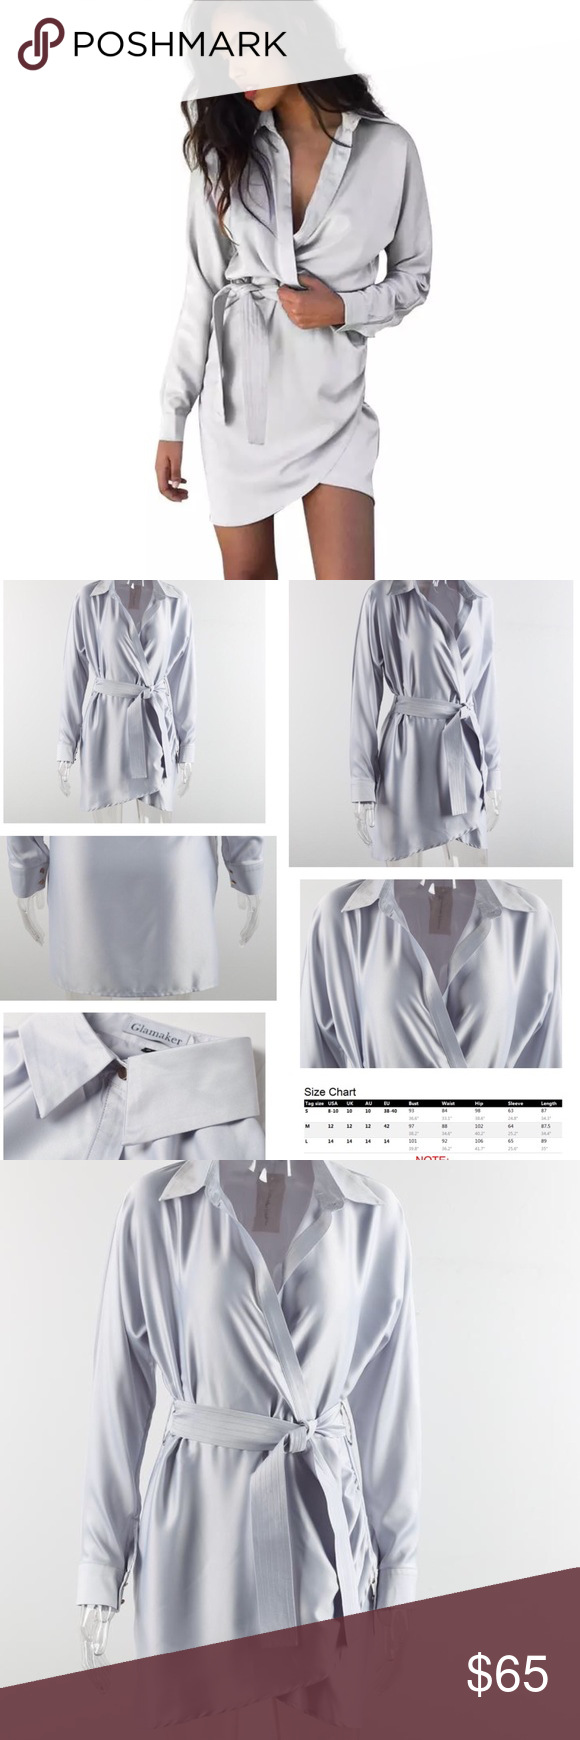 Satin Wrap Shirtdress Sexy yet effortlessly classic belted satin wrap Shirtdress. The perfect versatile wardrobe piece, great for the office or a night out. Inspired from the sleepwear trends of the A/W 16 runway season. 🚫🚫COMING SOON! Comment to secure your order today! 🚫🚫 Specifics🔻🔻🔻🔻🔻 Brand Name: Glamaker Material: Poly,Spandex,satin  Style: Wrap  Silhouette: Asymmetrical Color: pearl  Sleeve Length: Full Dresses Length:Above Knee, Mini Waistline:Empire Neckline: Turn-down…